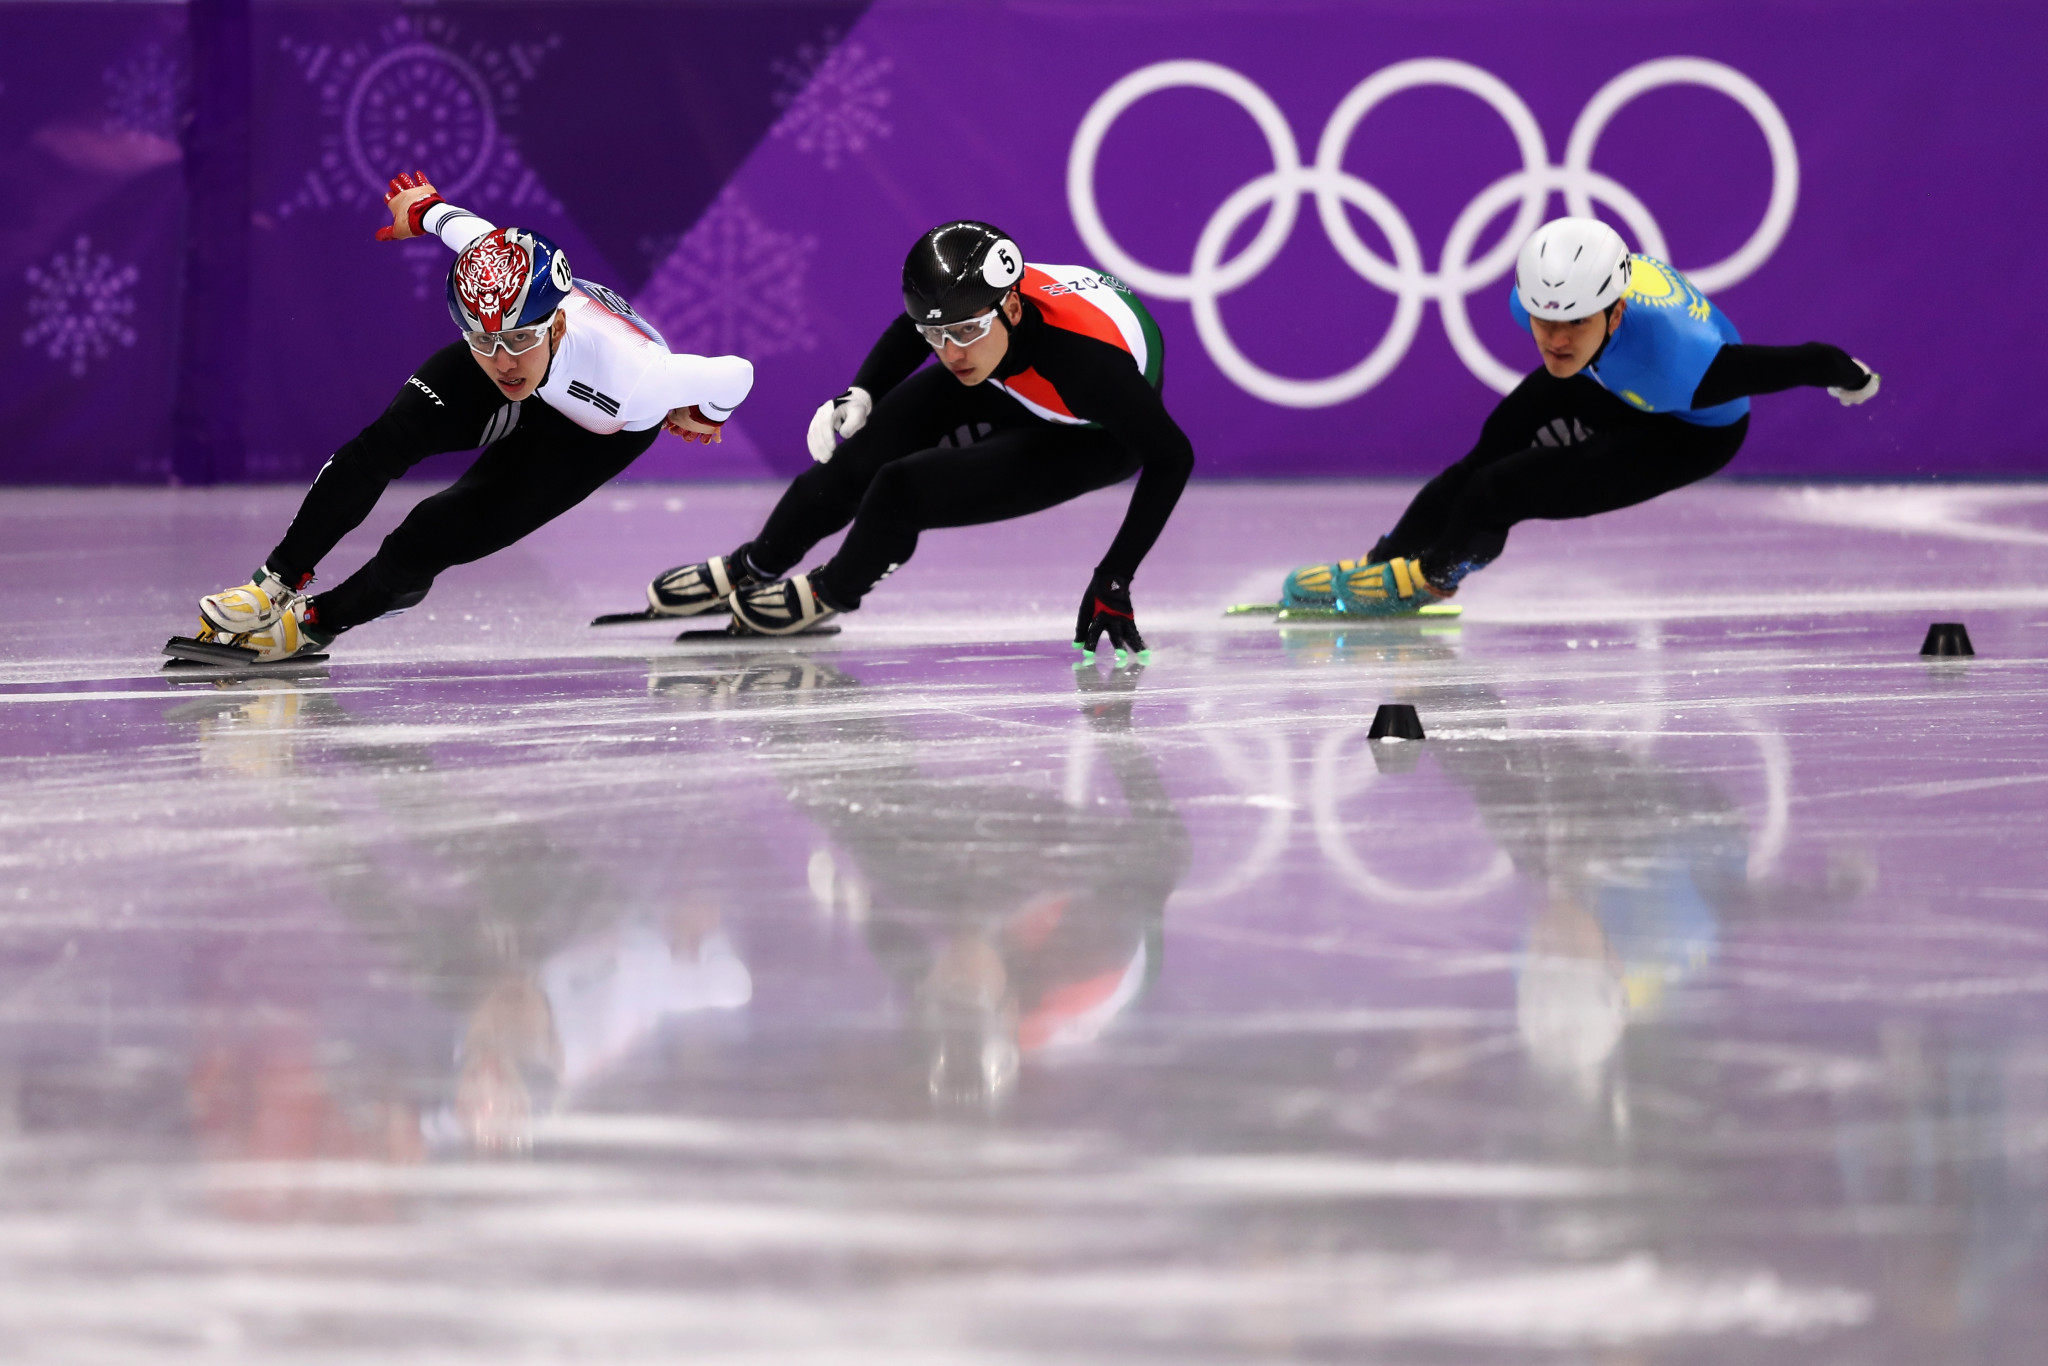 Pyeongchang 2018: Day 13 of competition